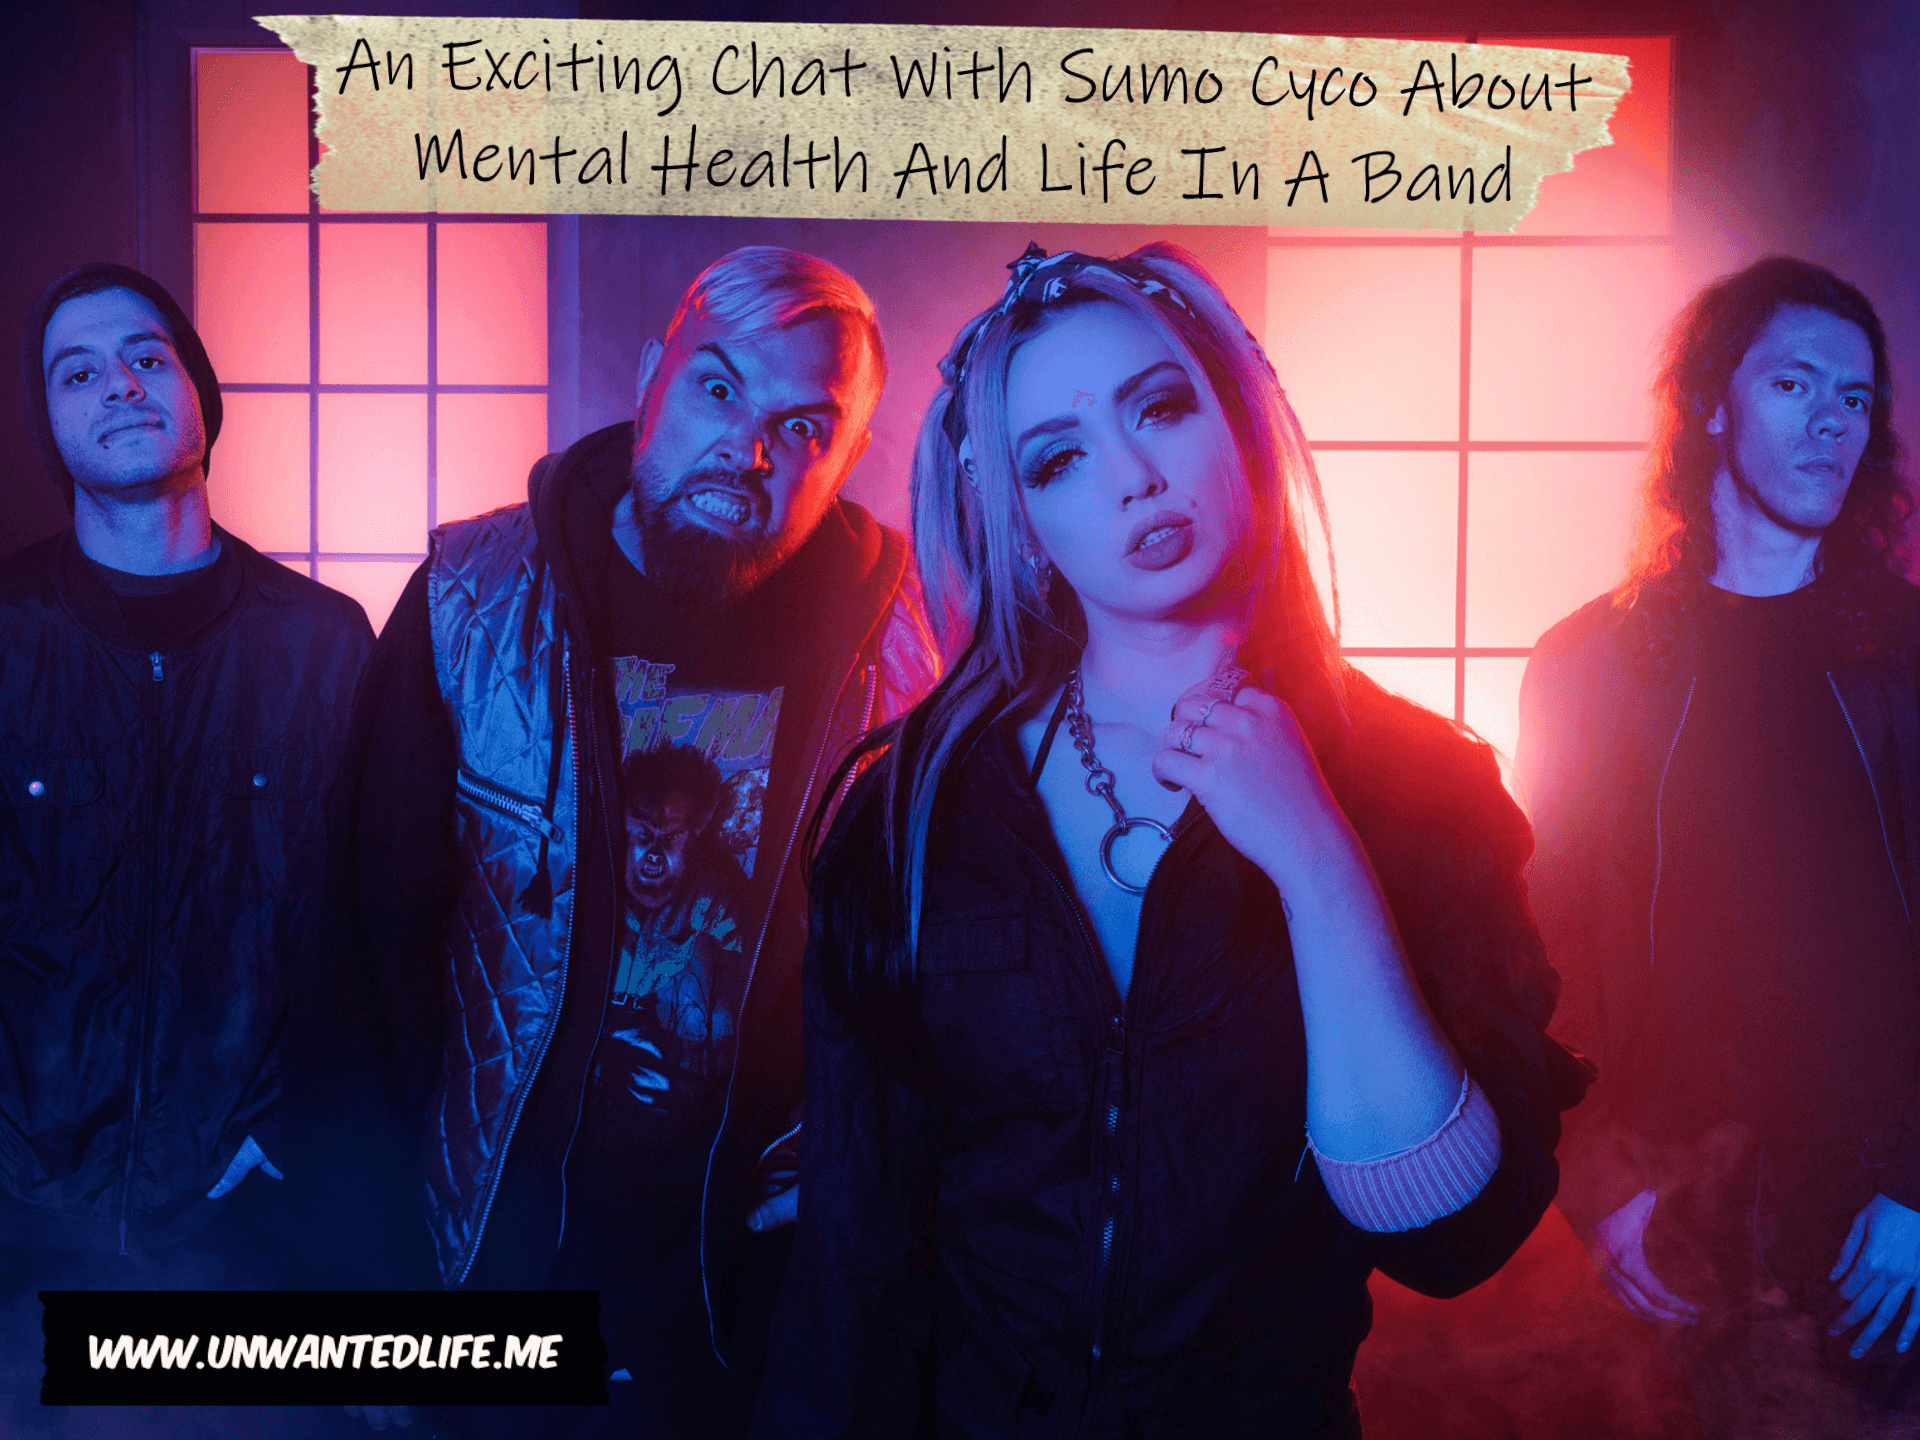 A photo of the band Sumo Cyco to represent the topic of the article - An Exciting Chat With Sumo Cyco About Mental Health And Life In A Band